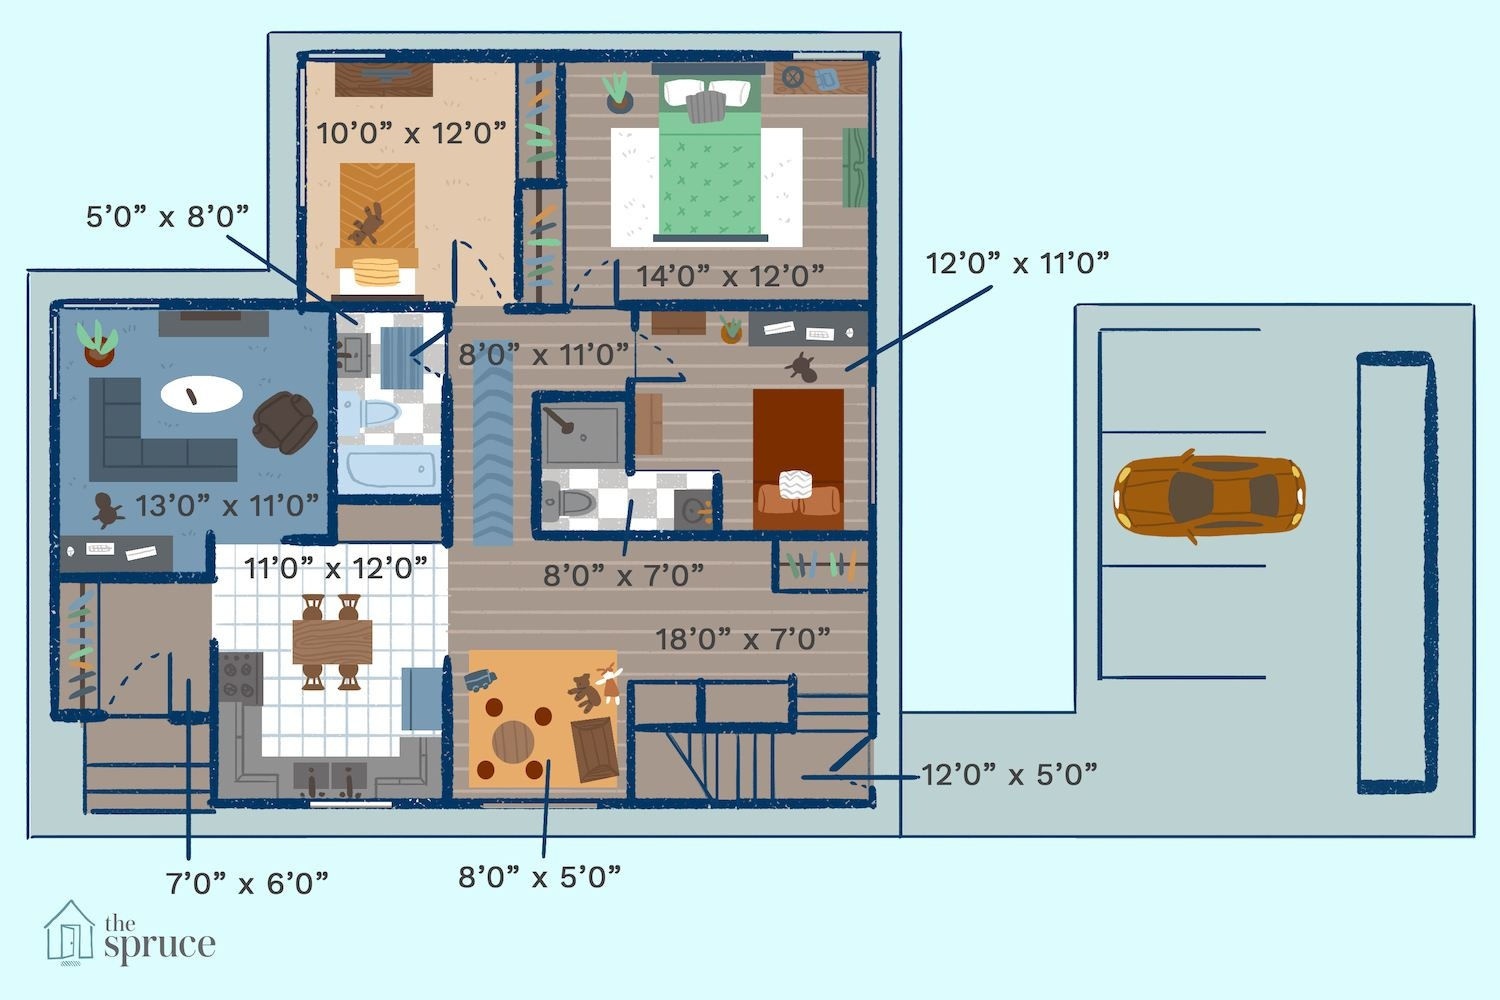 Free Small House Plans - Free Printable Small House Plans